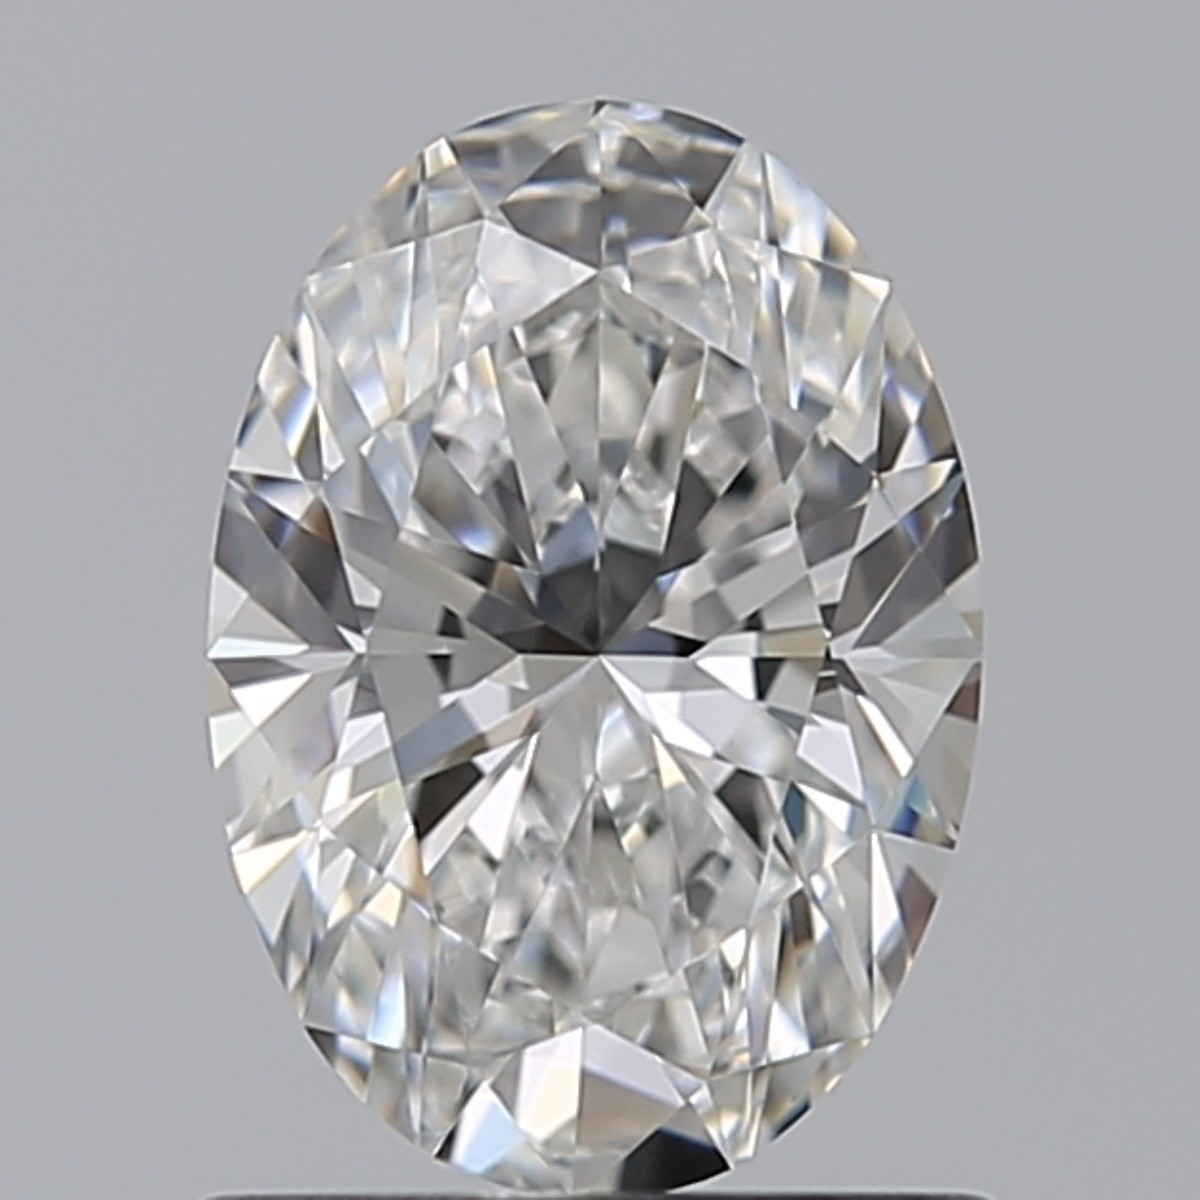 0.82 Carat Oval Diamond (E/VS1)